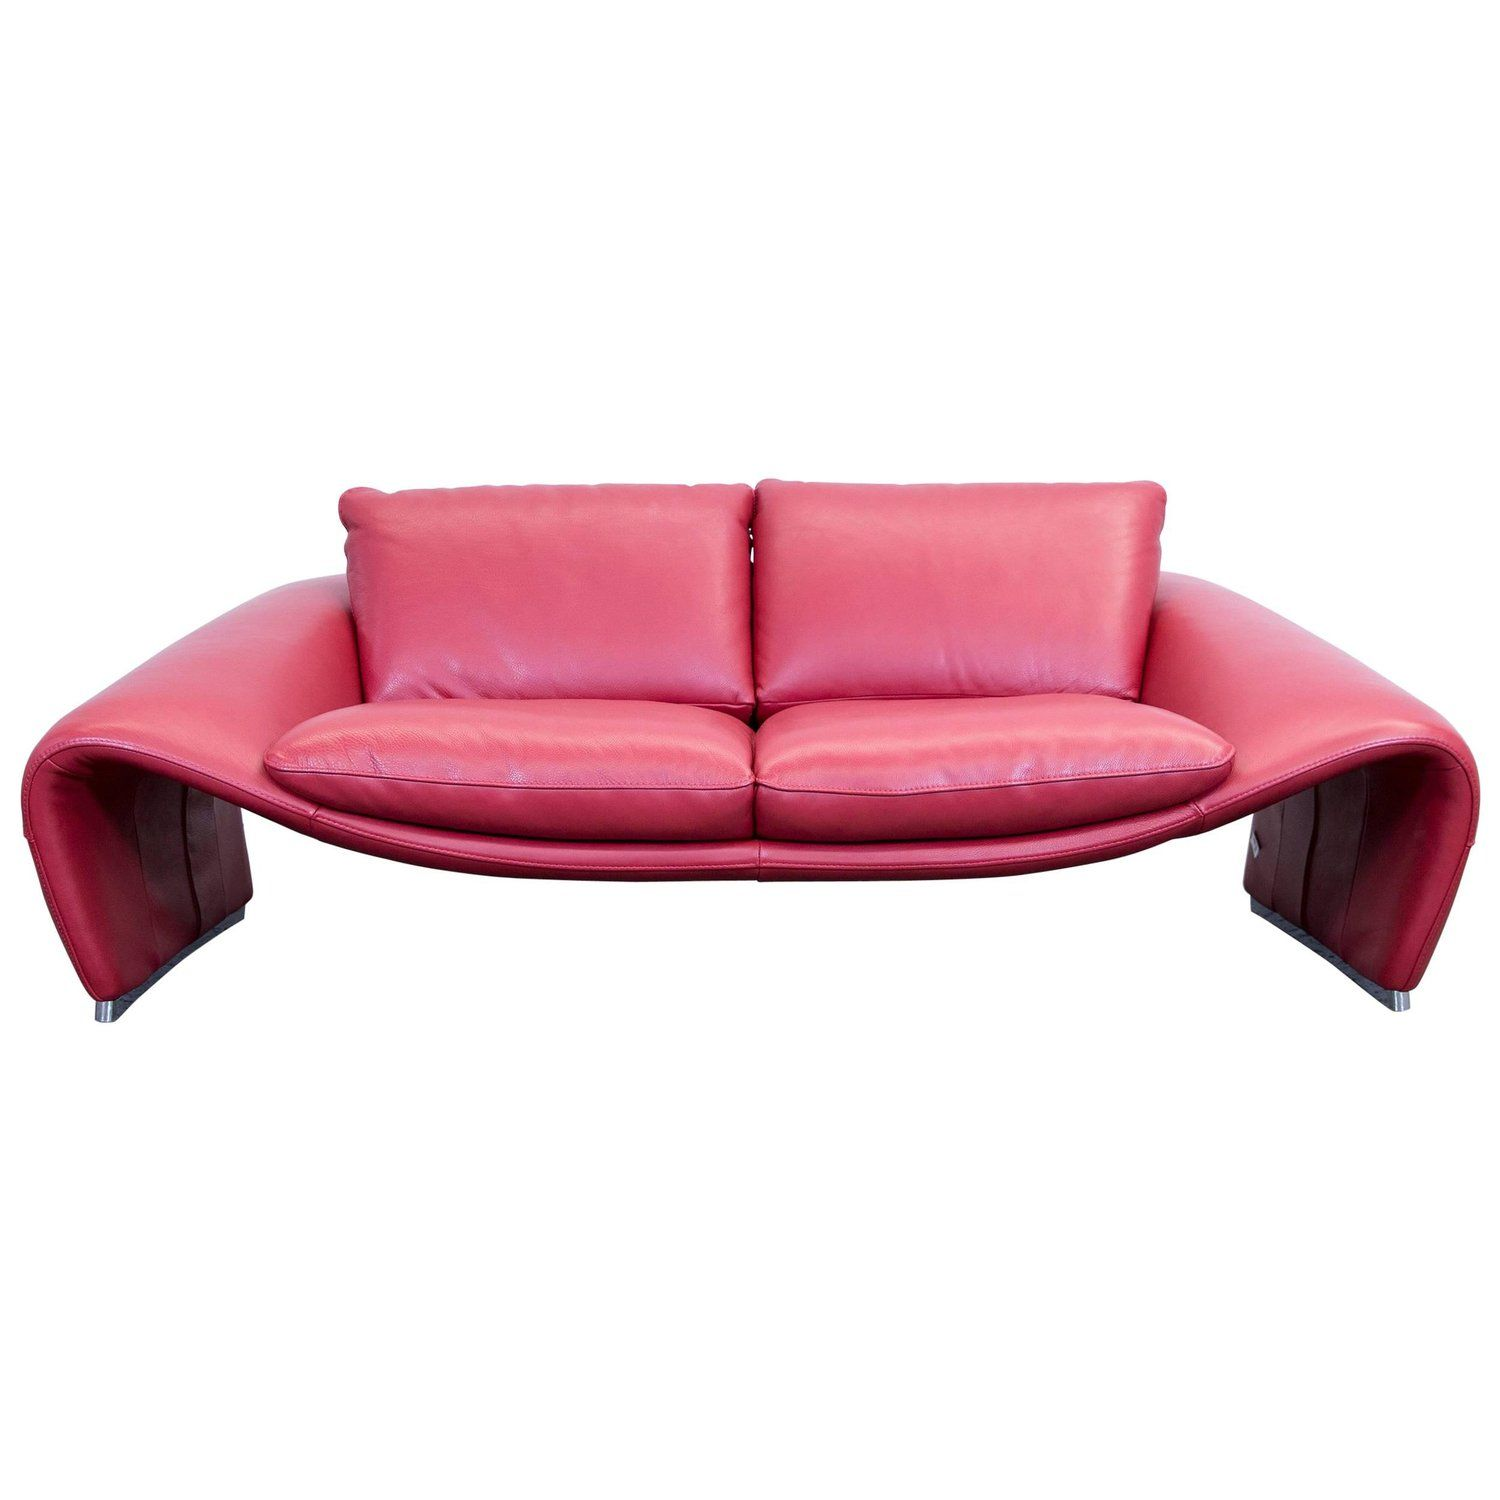 Chateau D Ax Voga Designer Sofa Leather Red Three Seat Function